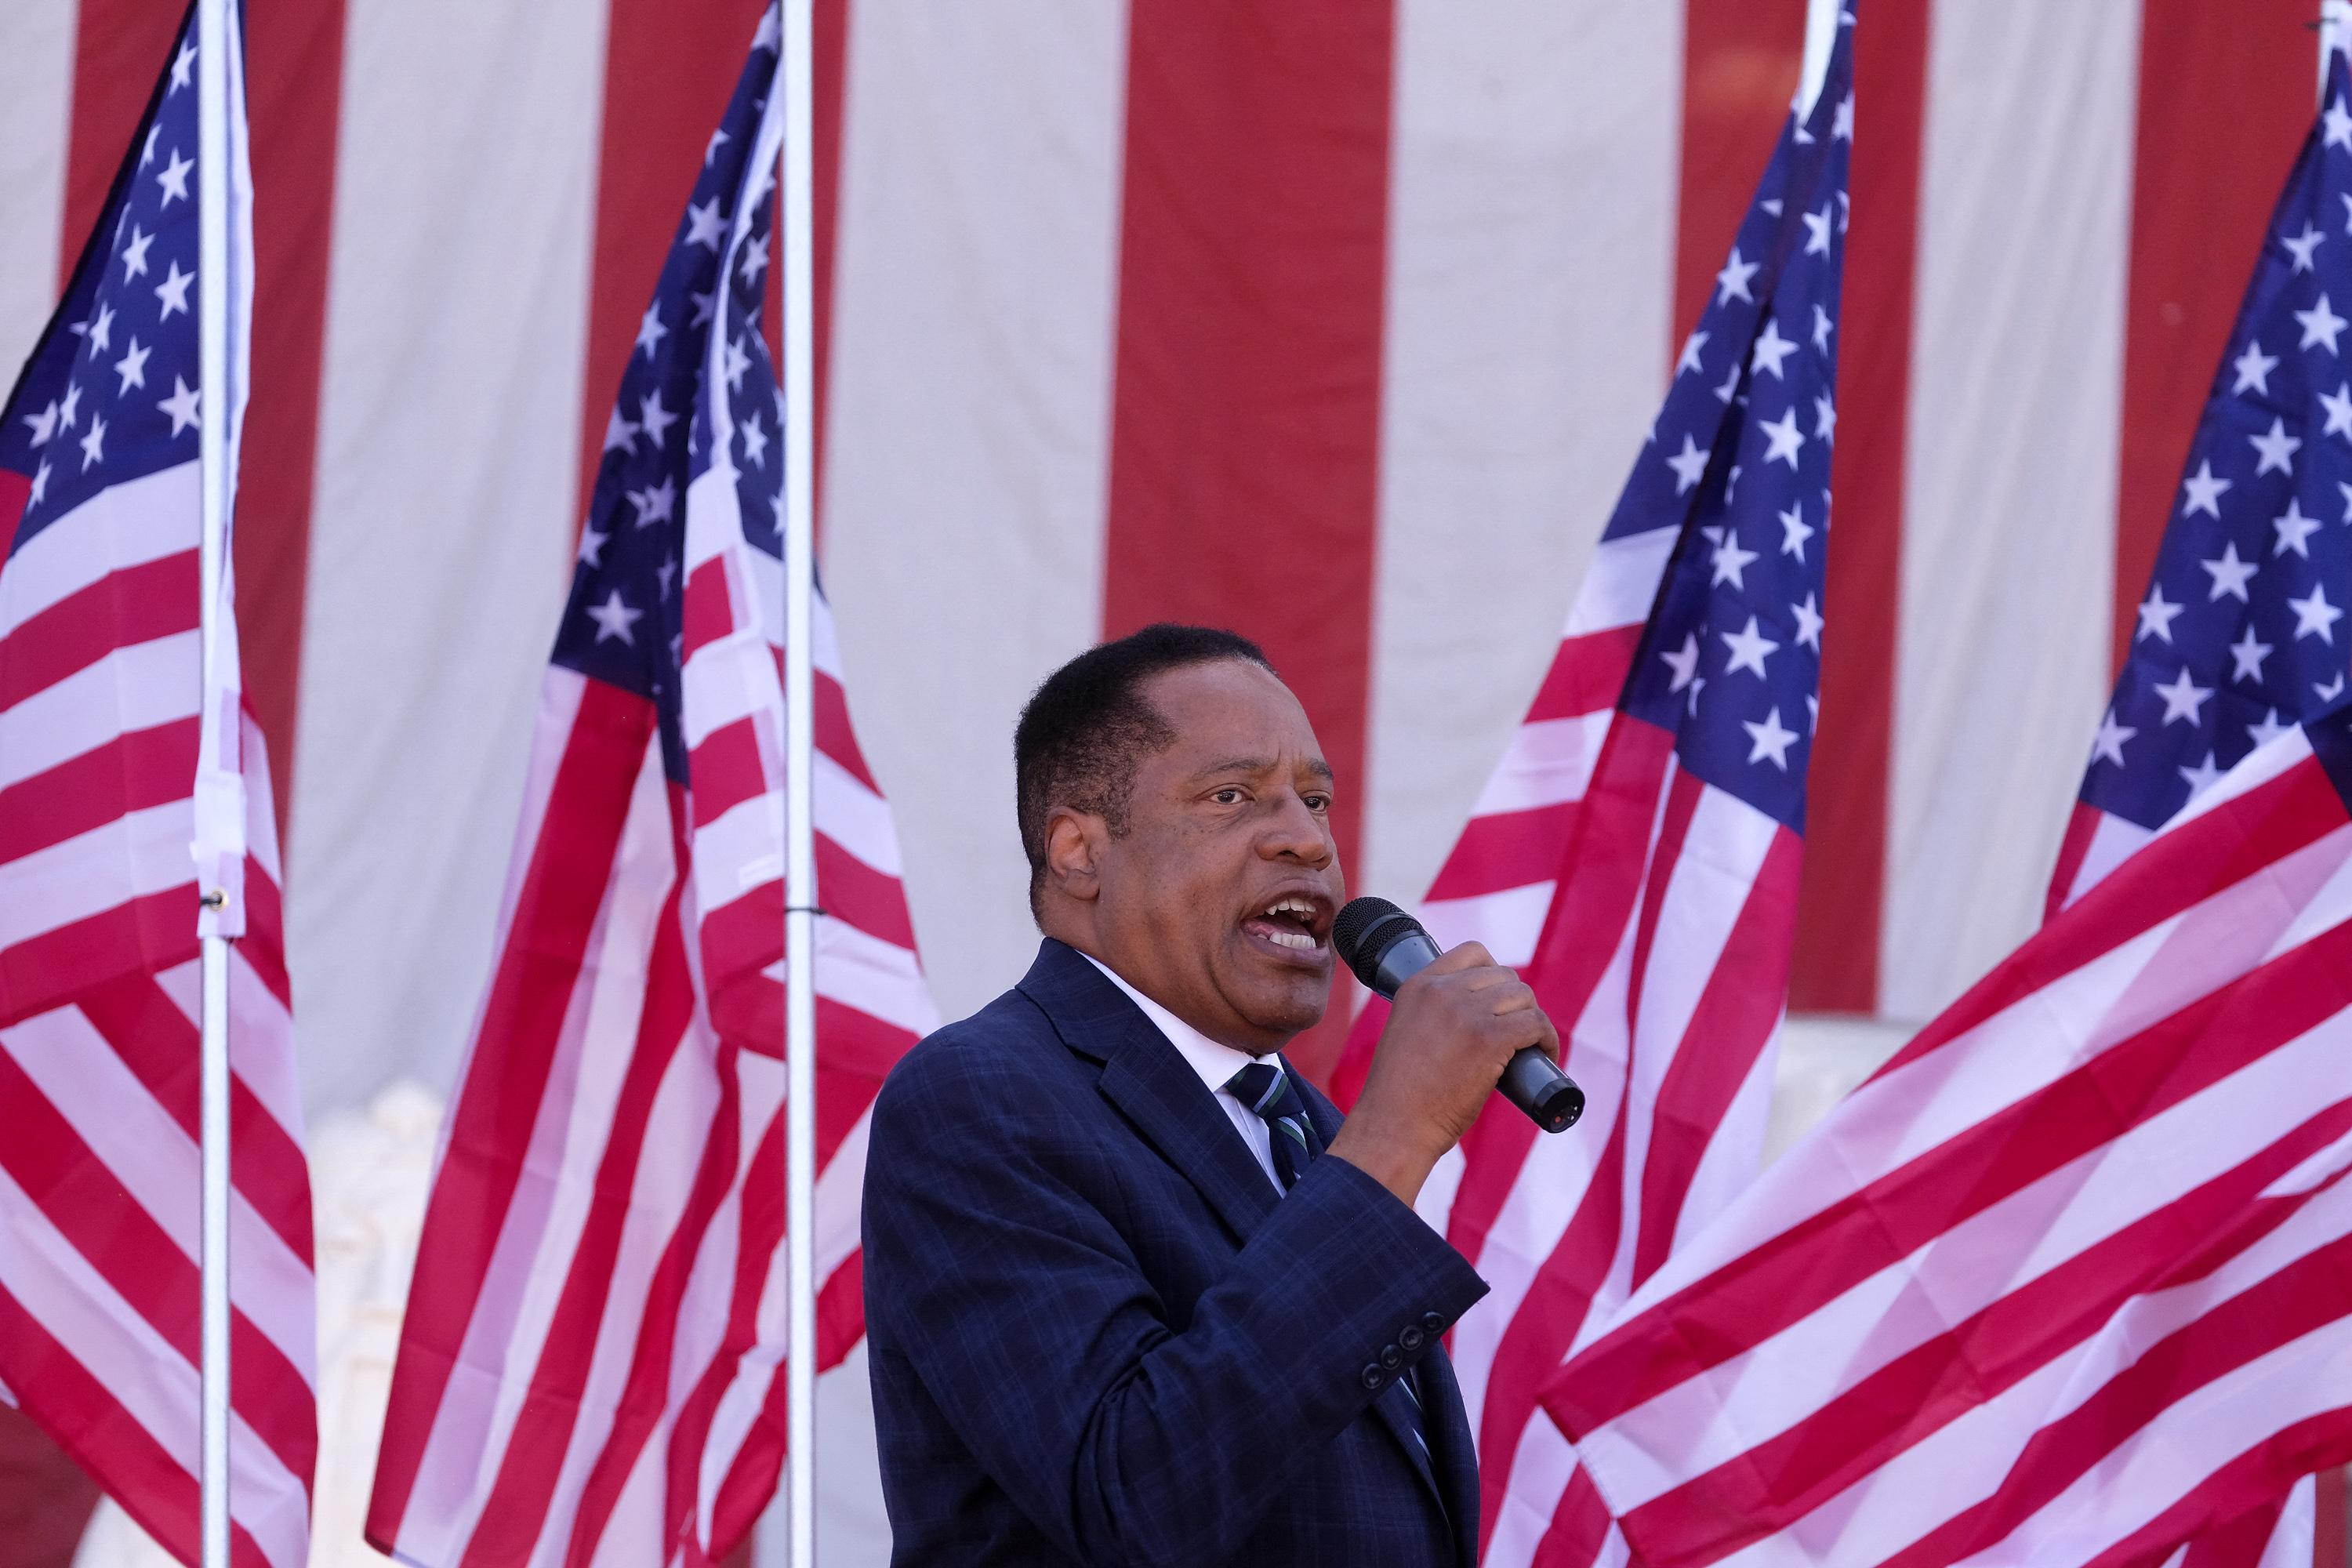 Republican gubernatorial candidate Larry Elder speaks to supporters during an Asian Rally for Yes Recall at the Asian Garden Mall in Little Saigon, Westminster, California. (Photo by RINGO CHIU/AFP via Getty Images)